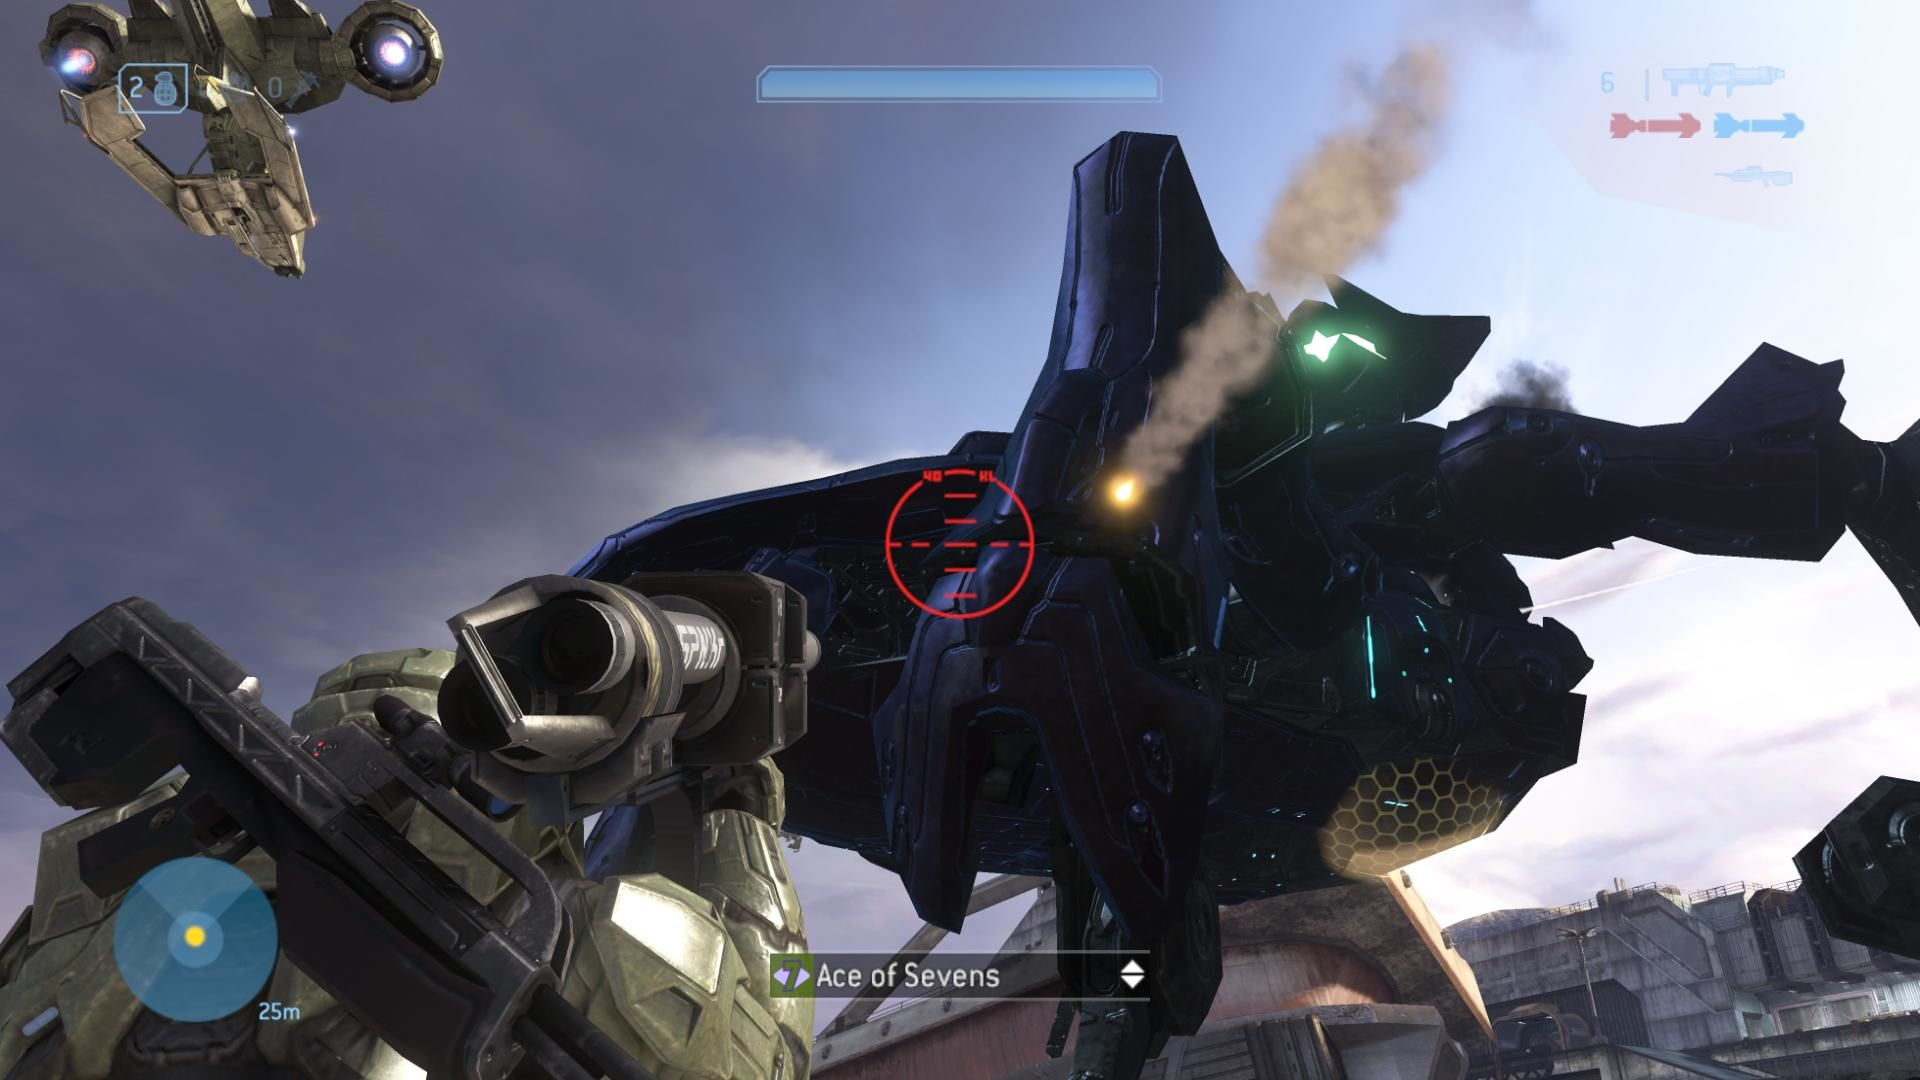 Halo 3 Xbox 360 Taking out a Scarab from the back of a Mongoose in campaign. NPCs in the new Hornet aircraft are assisting.